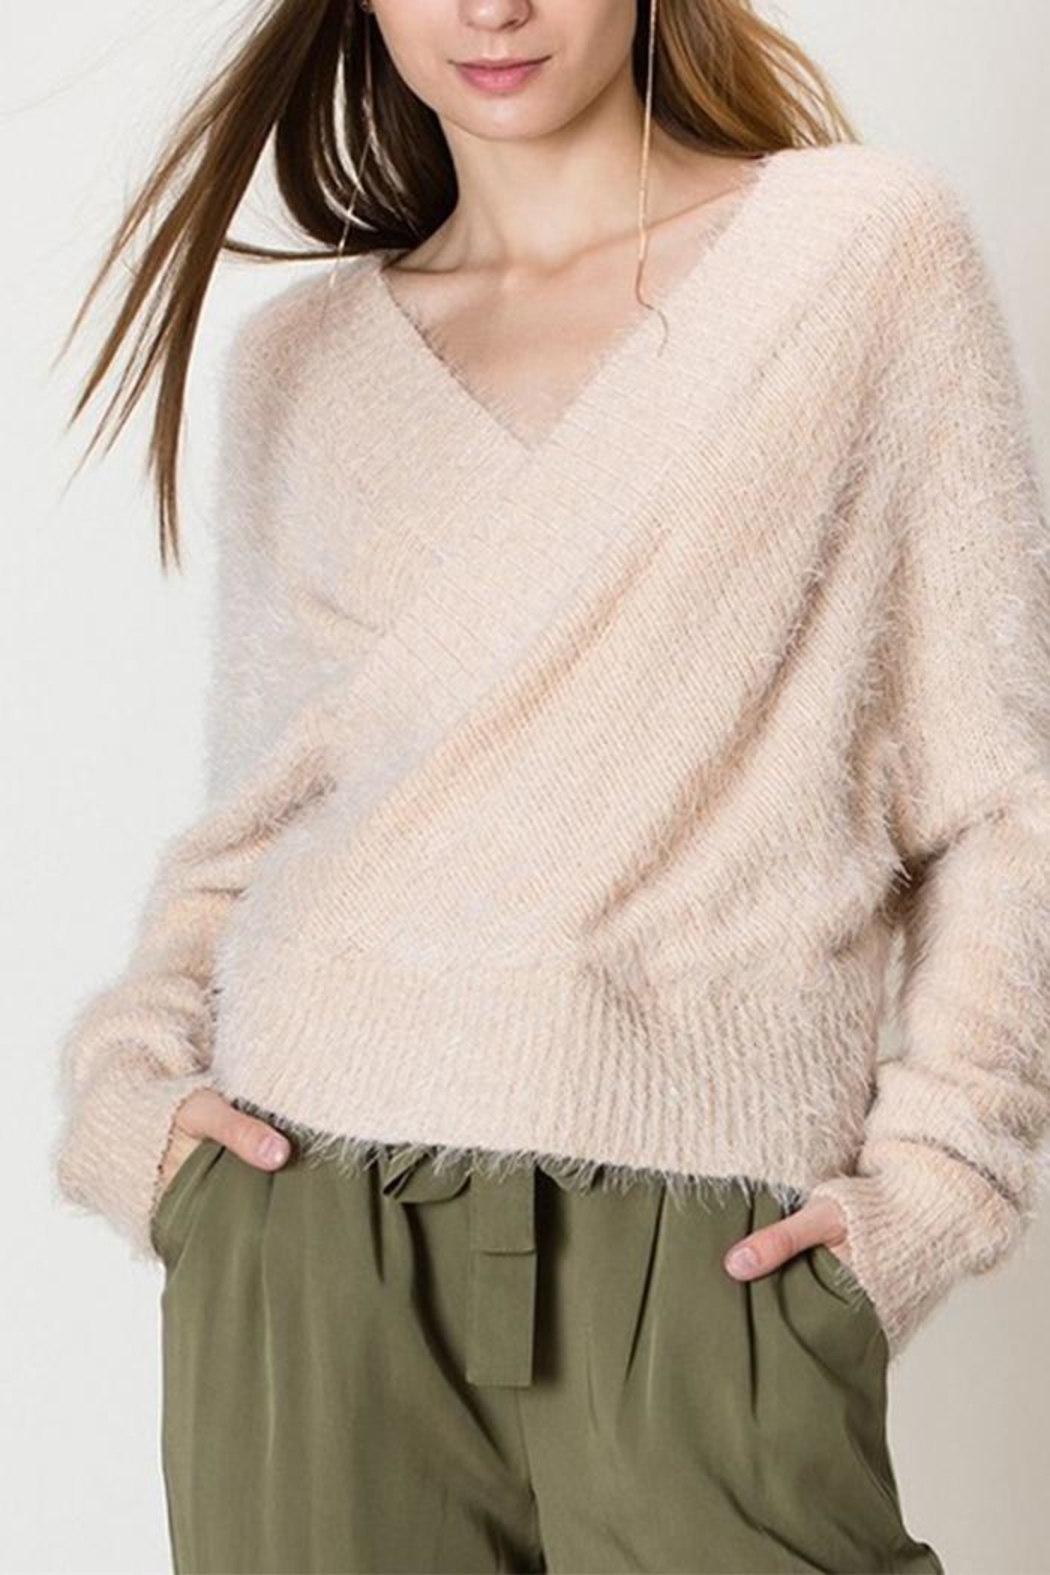 HYFVE Fuzzy Crossover Sweater - Main Image